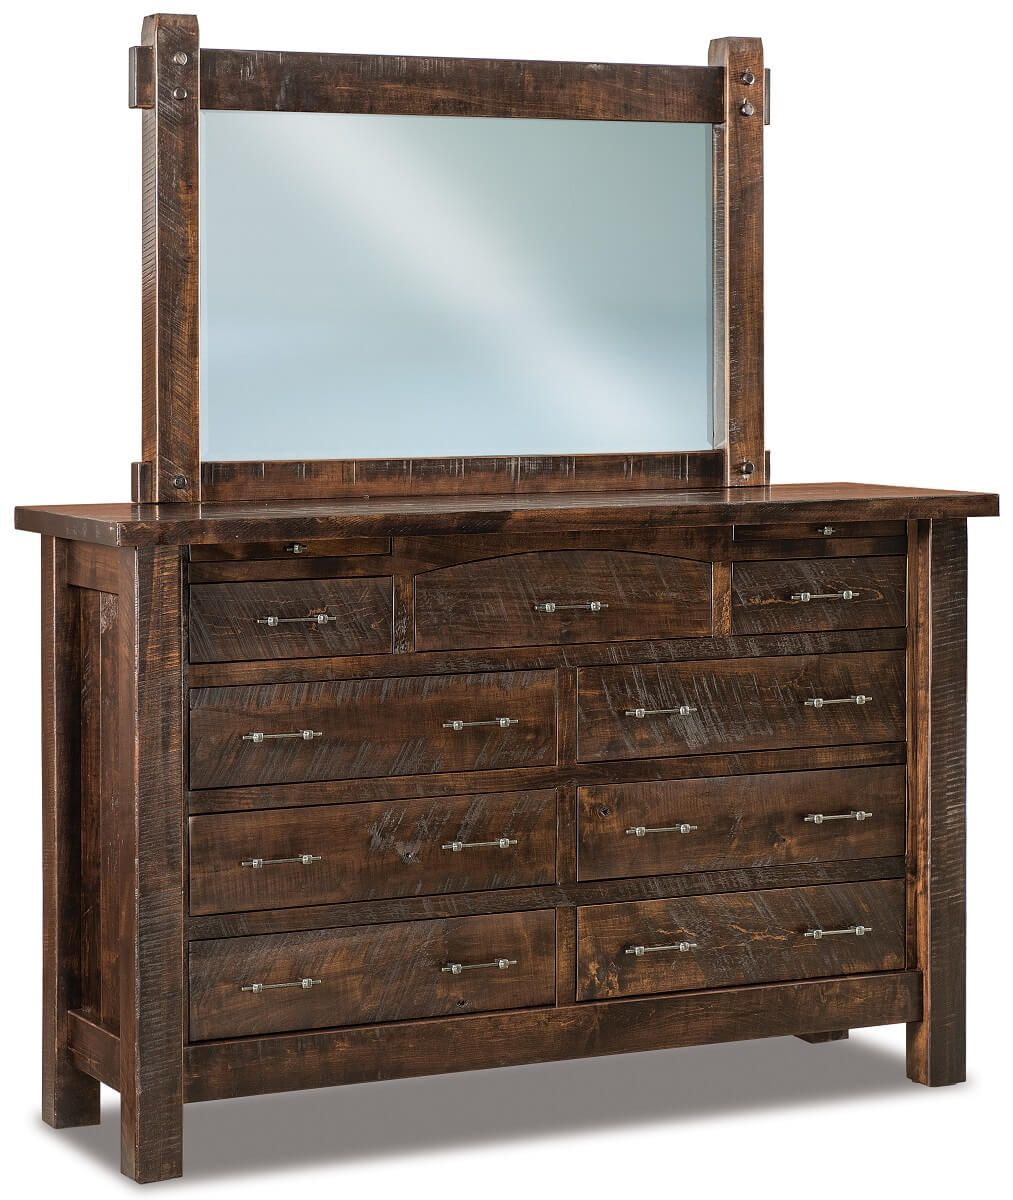 Brinkley Jewelry Dresser